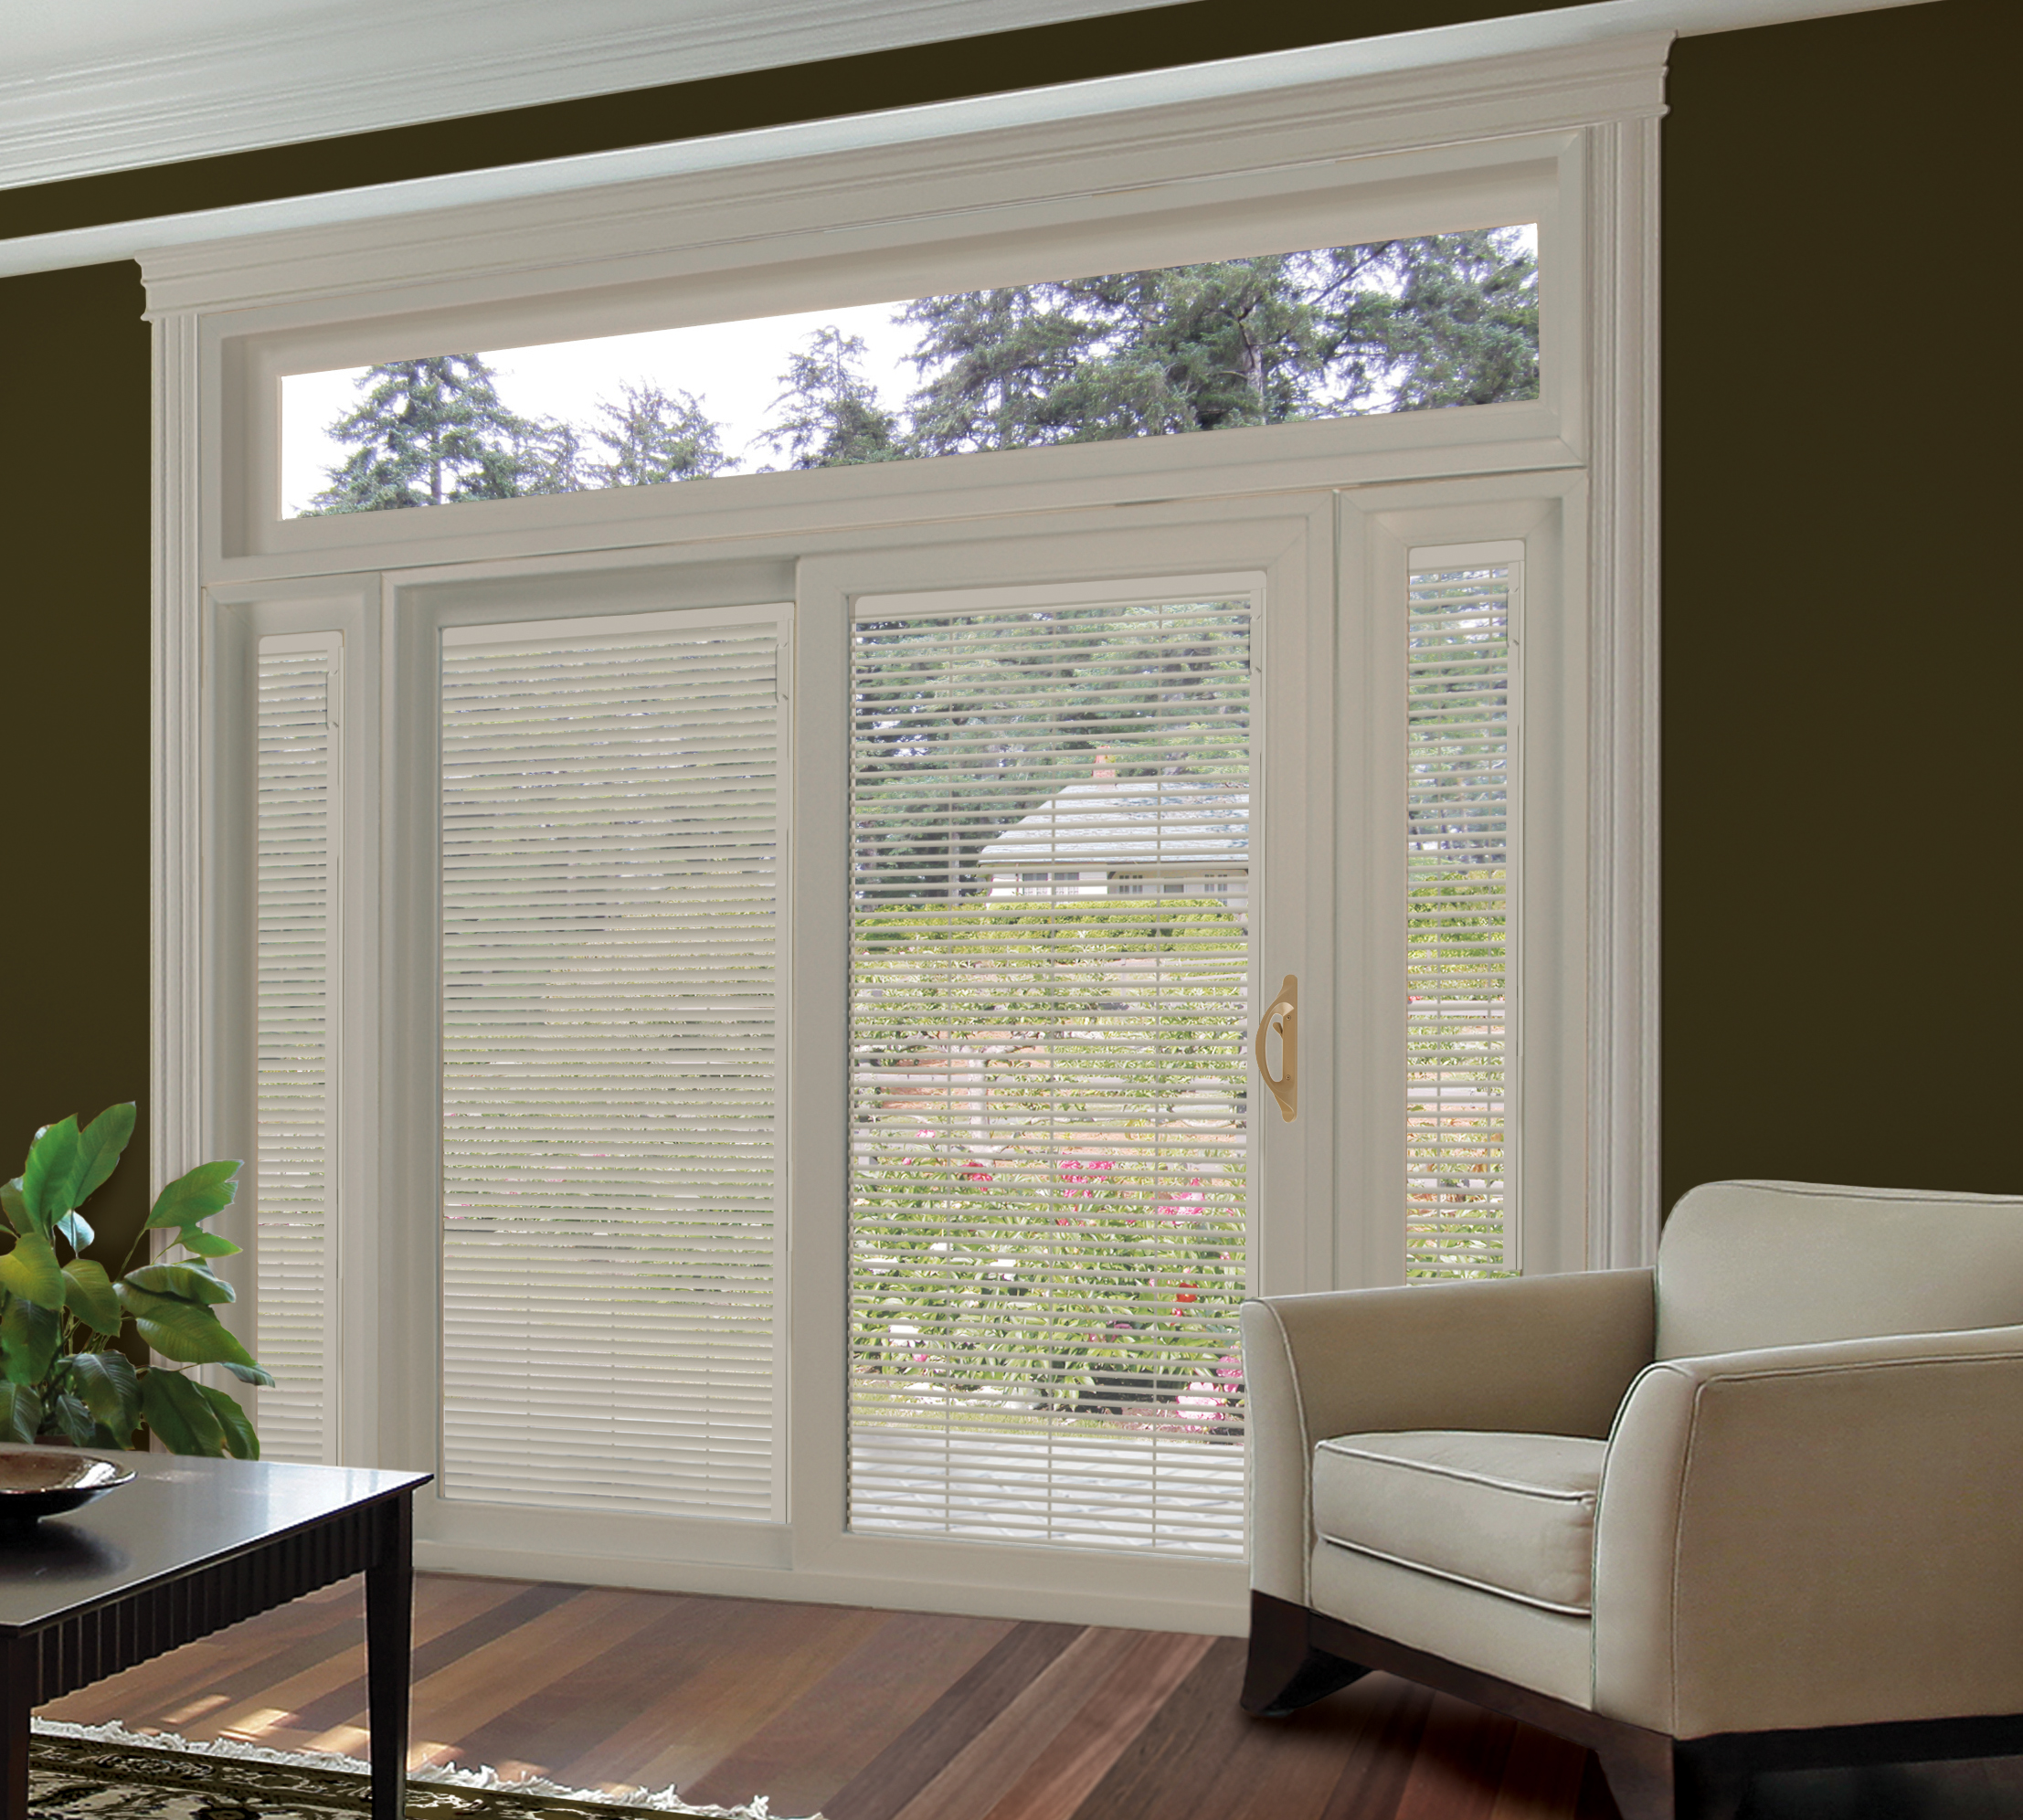 Kingsroyale Glide Room 2 - Living Room green with new miniblinds.jpg